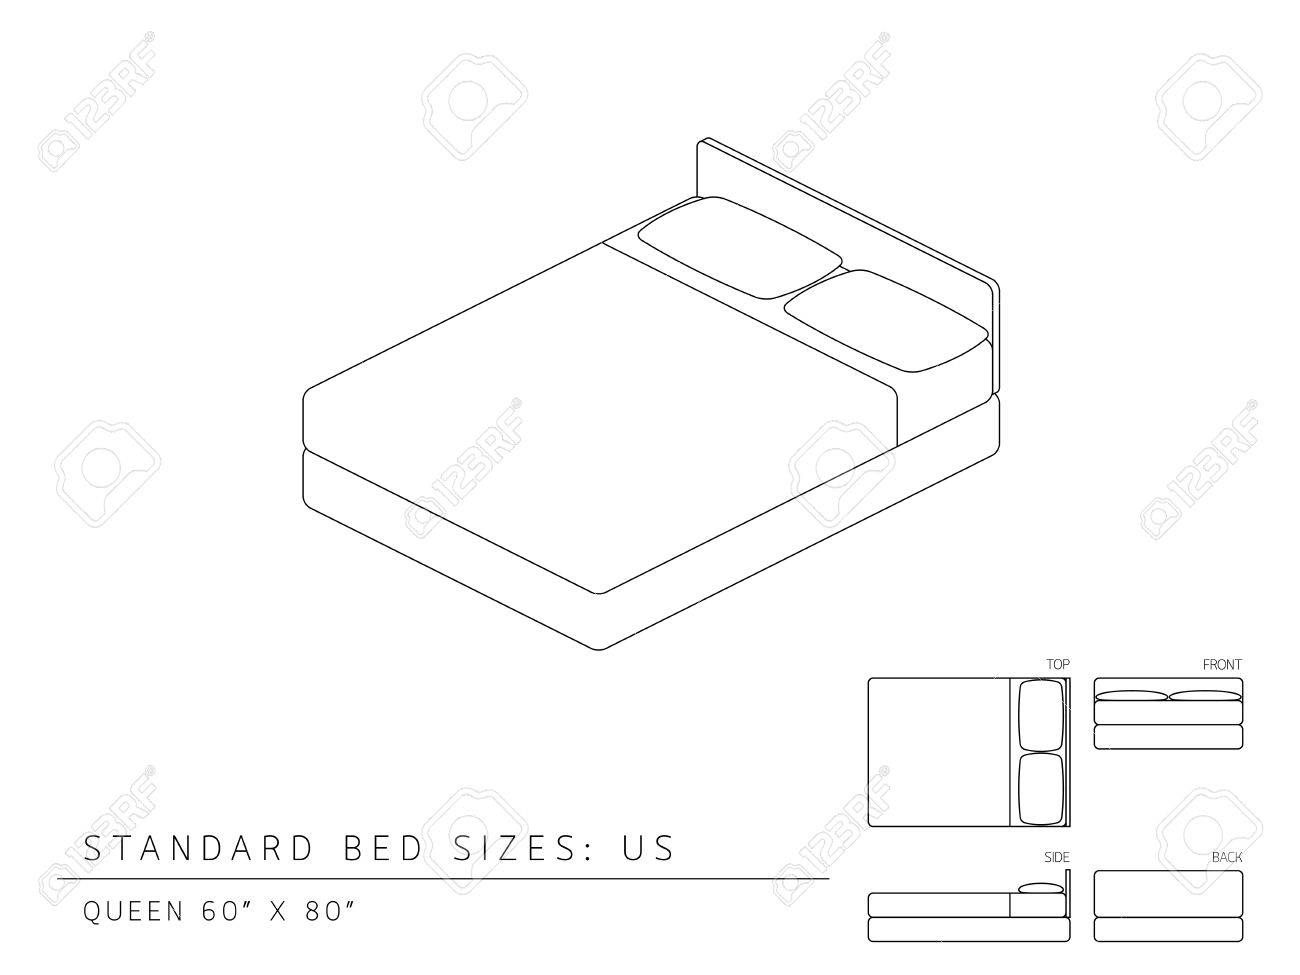 Standard Queen Size Bed Dimension Standard Bed Sizes Of Us United States Of America Queen Size